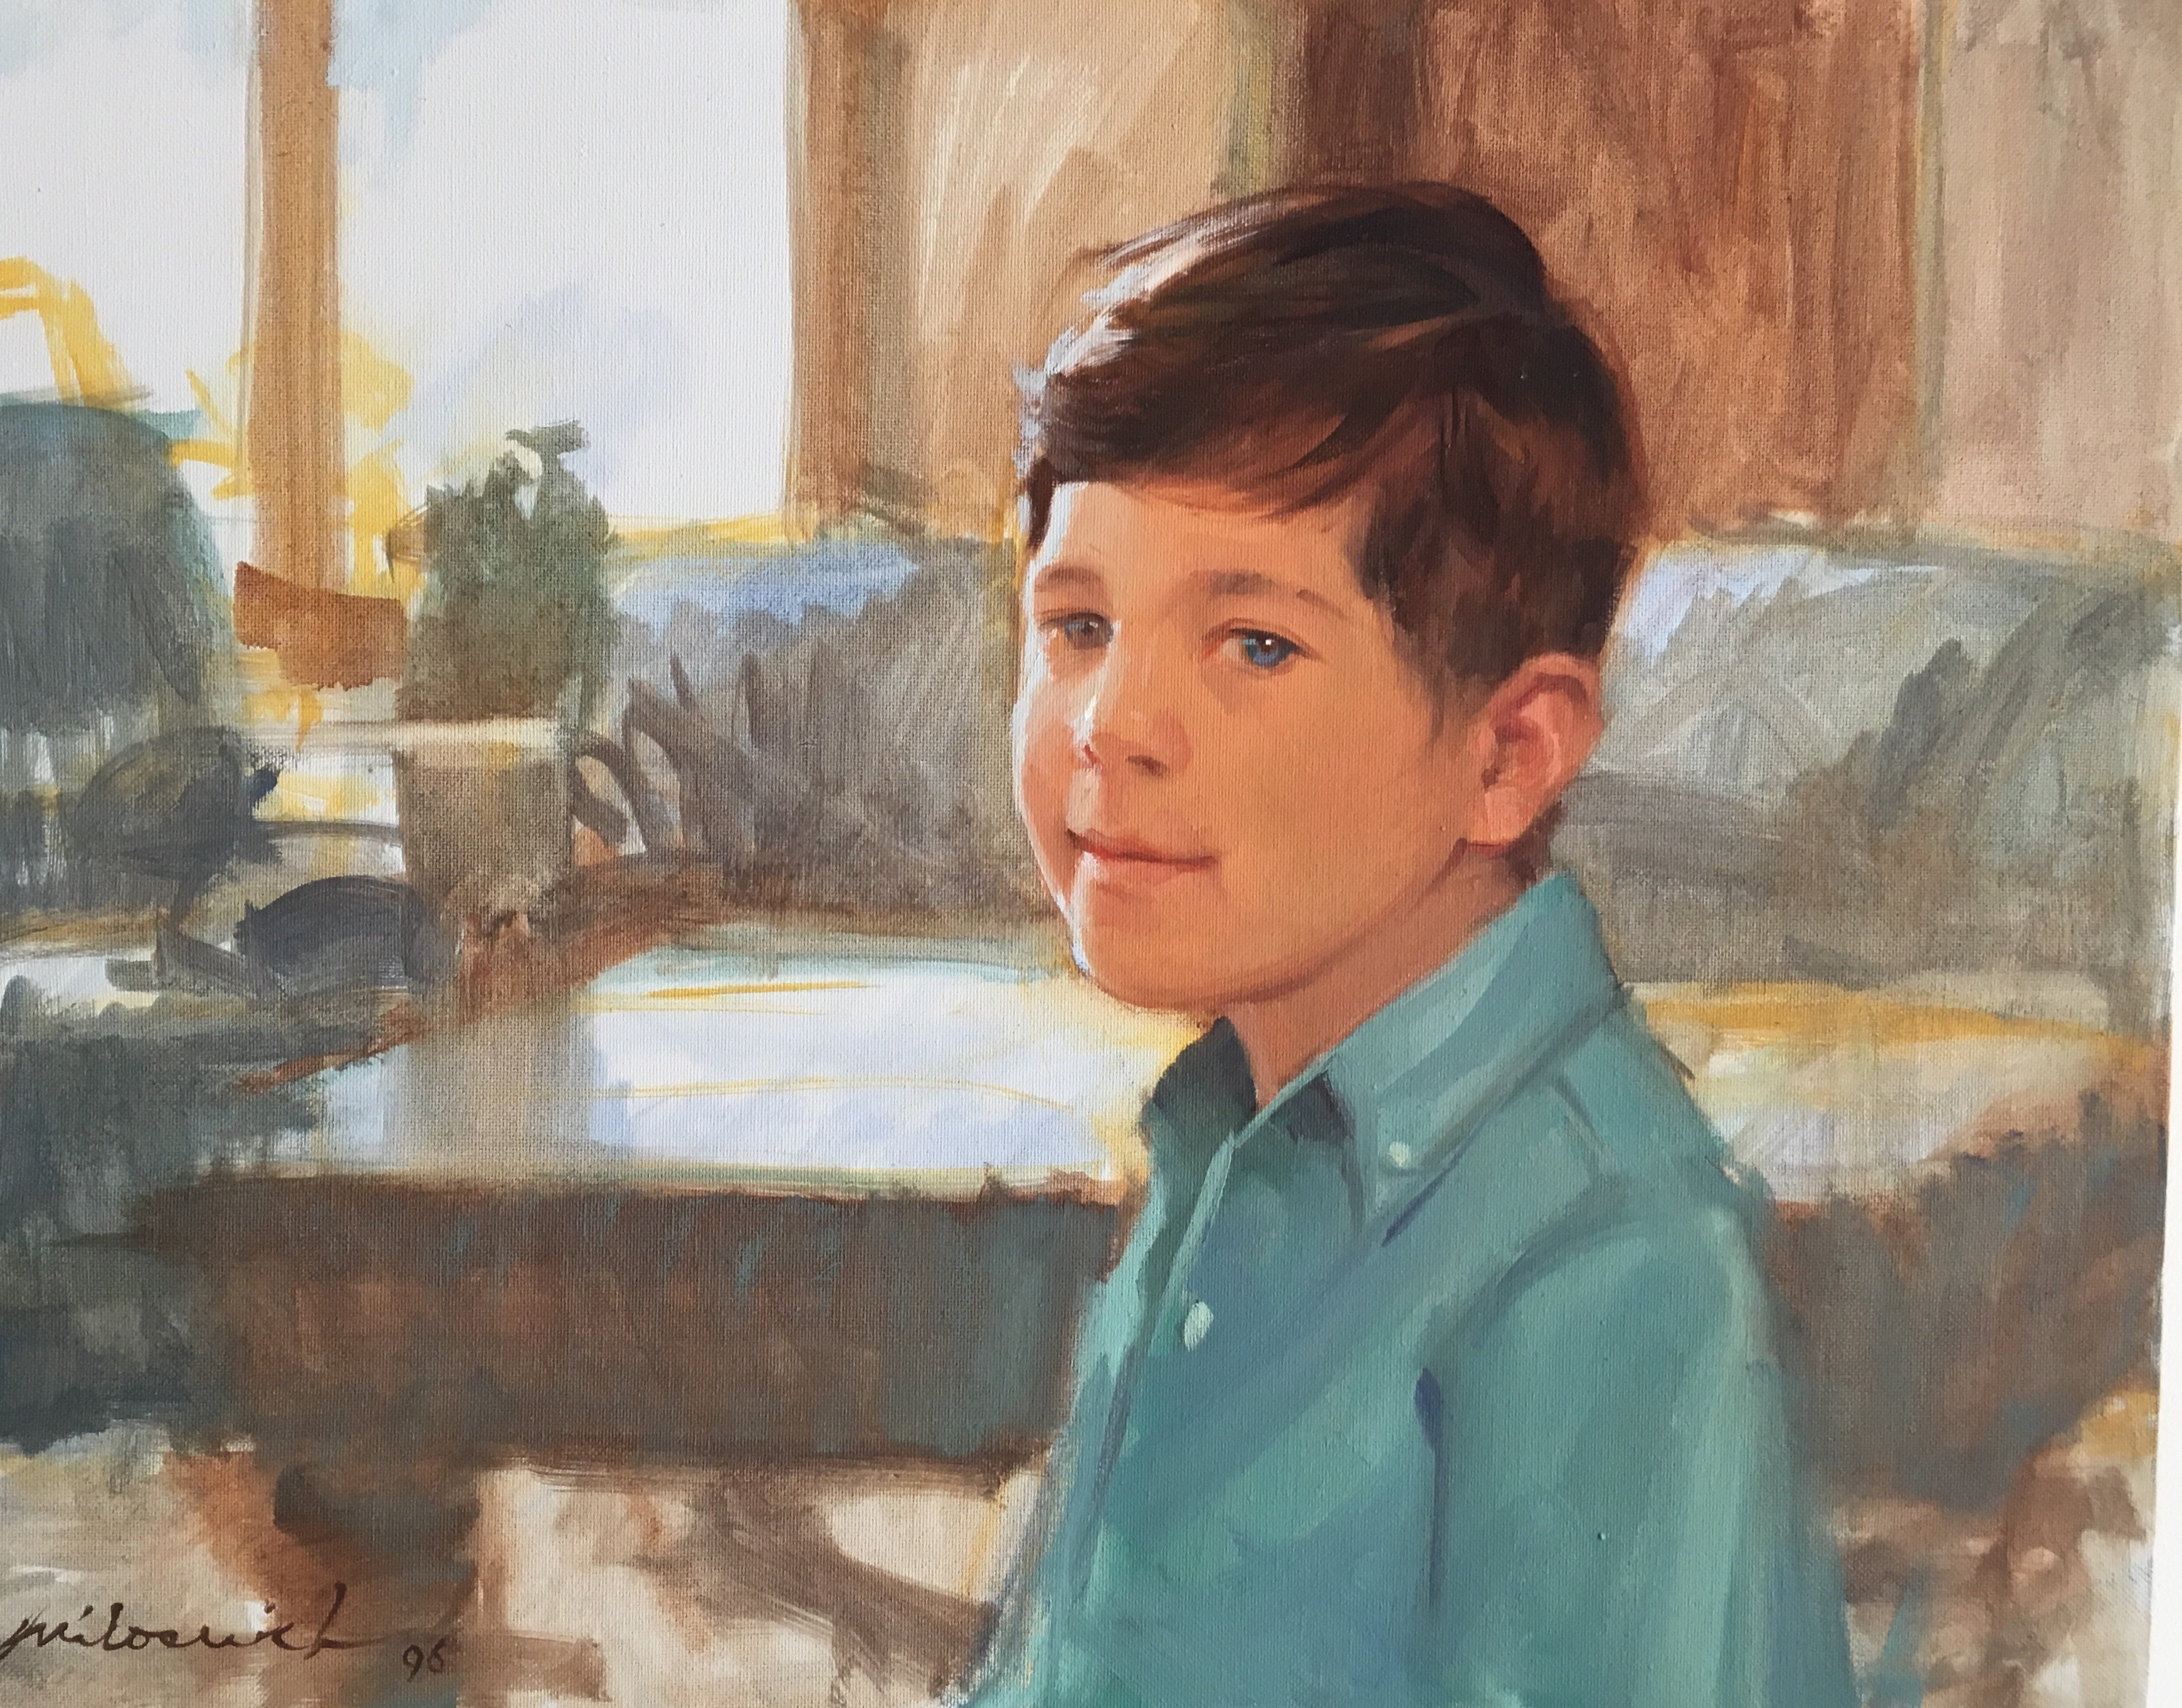 Boy in Turquoise Shirt - Portraits